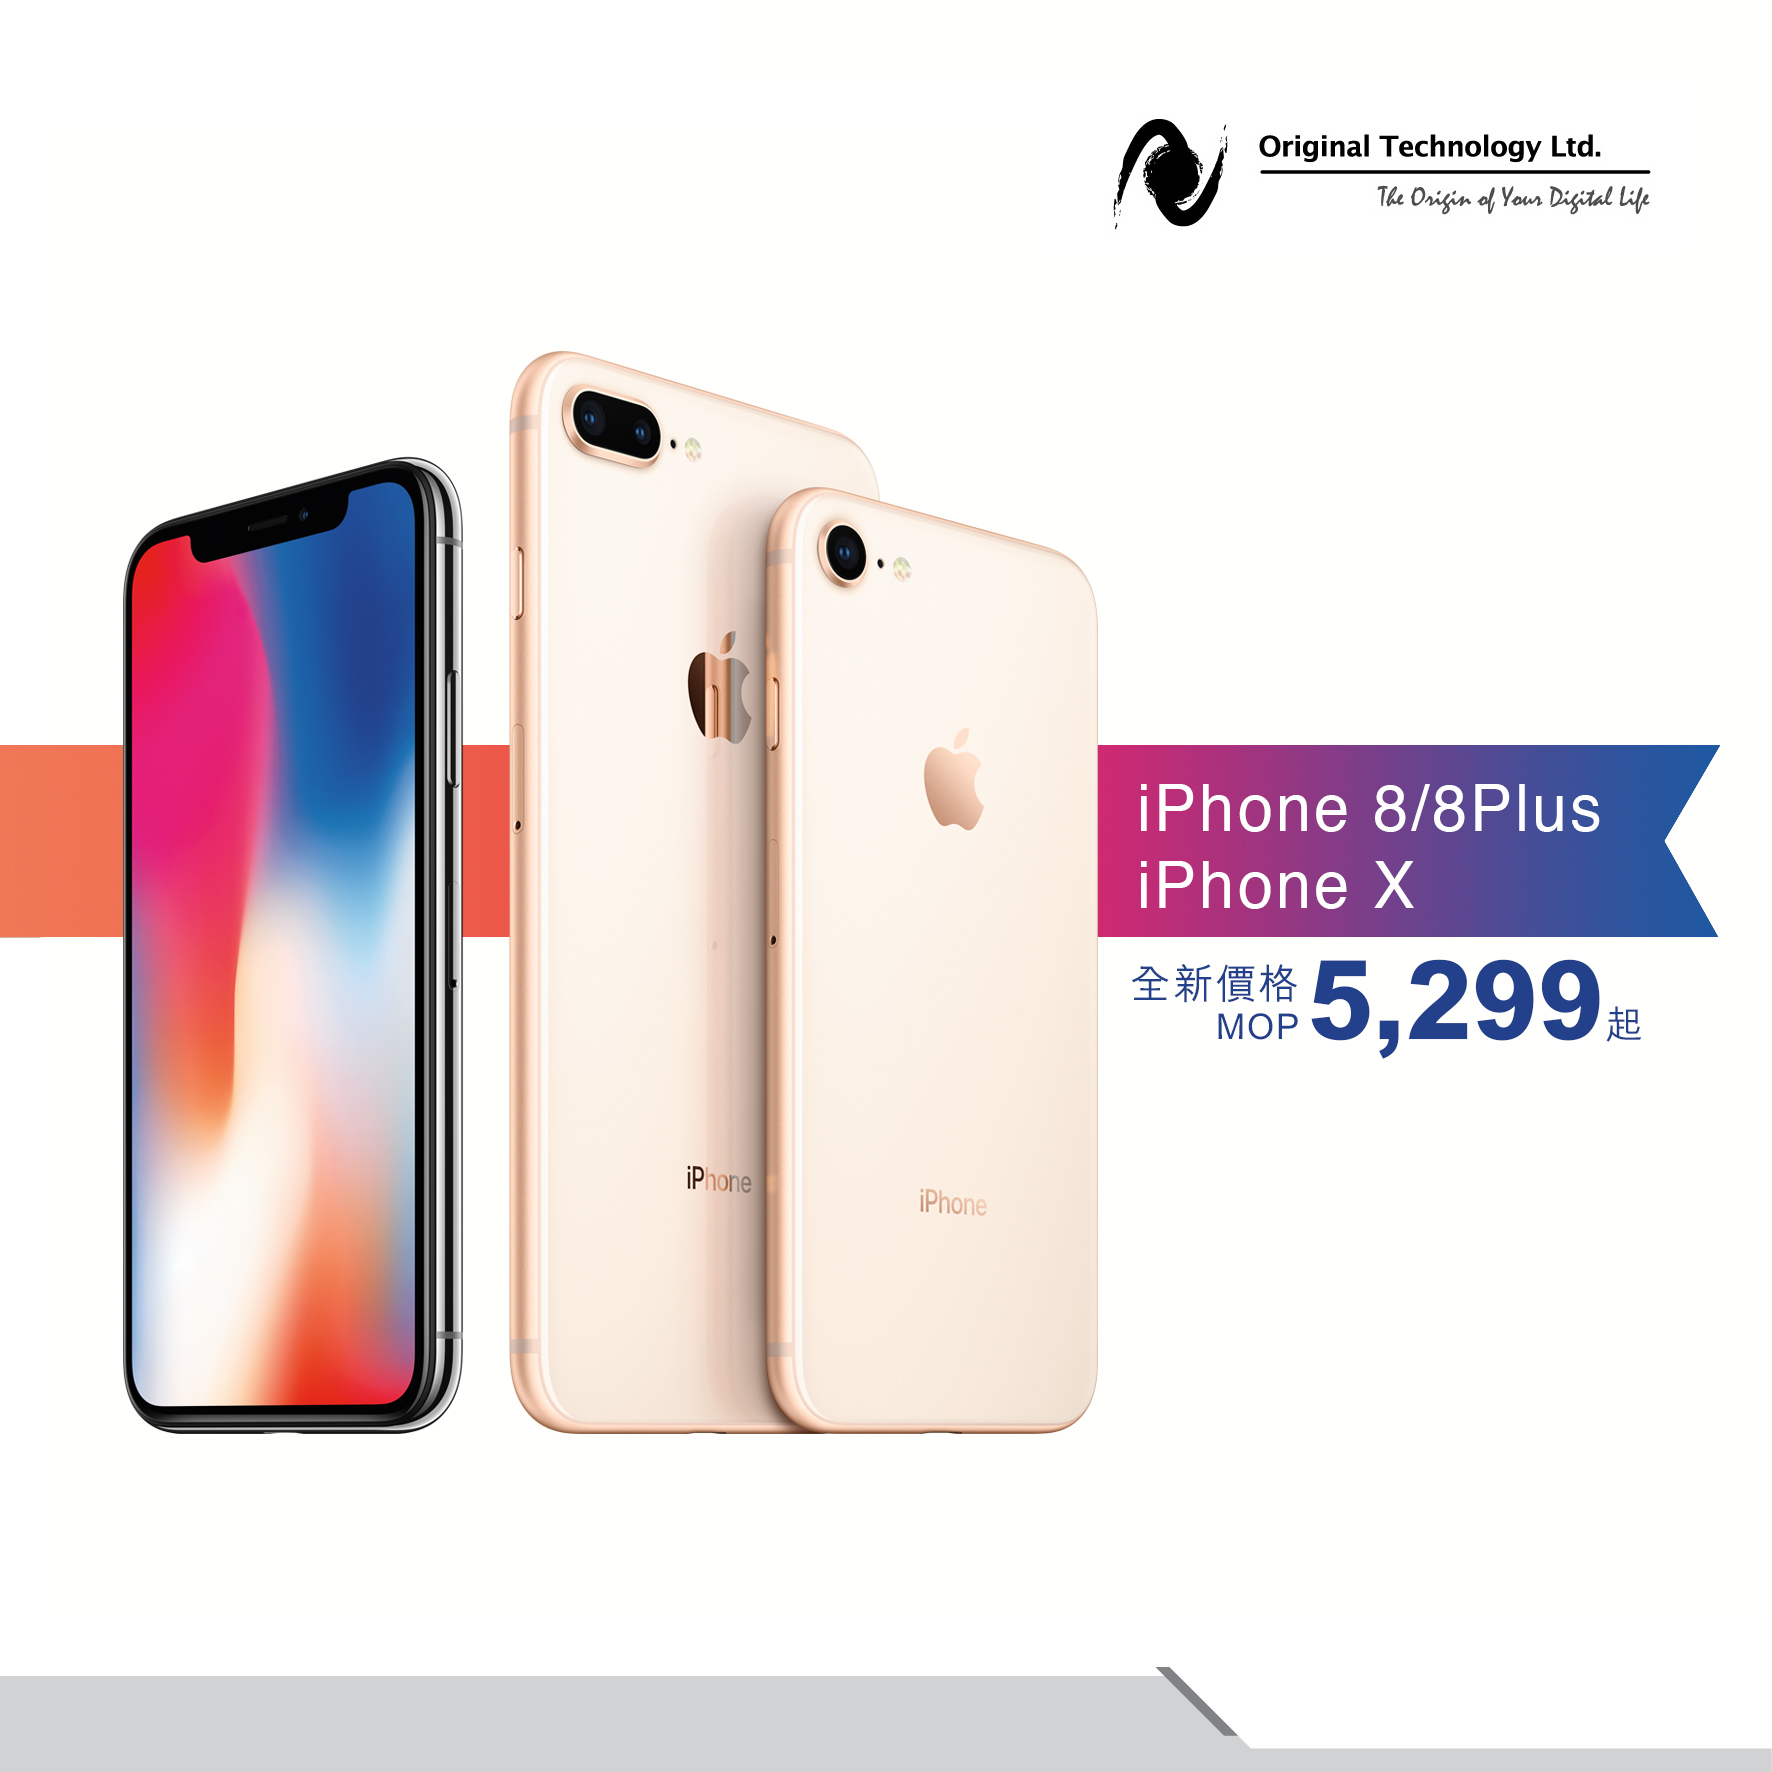 PR01_iPhone8-X_Sale_FB01-01-1.jpg